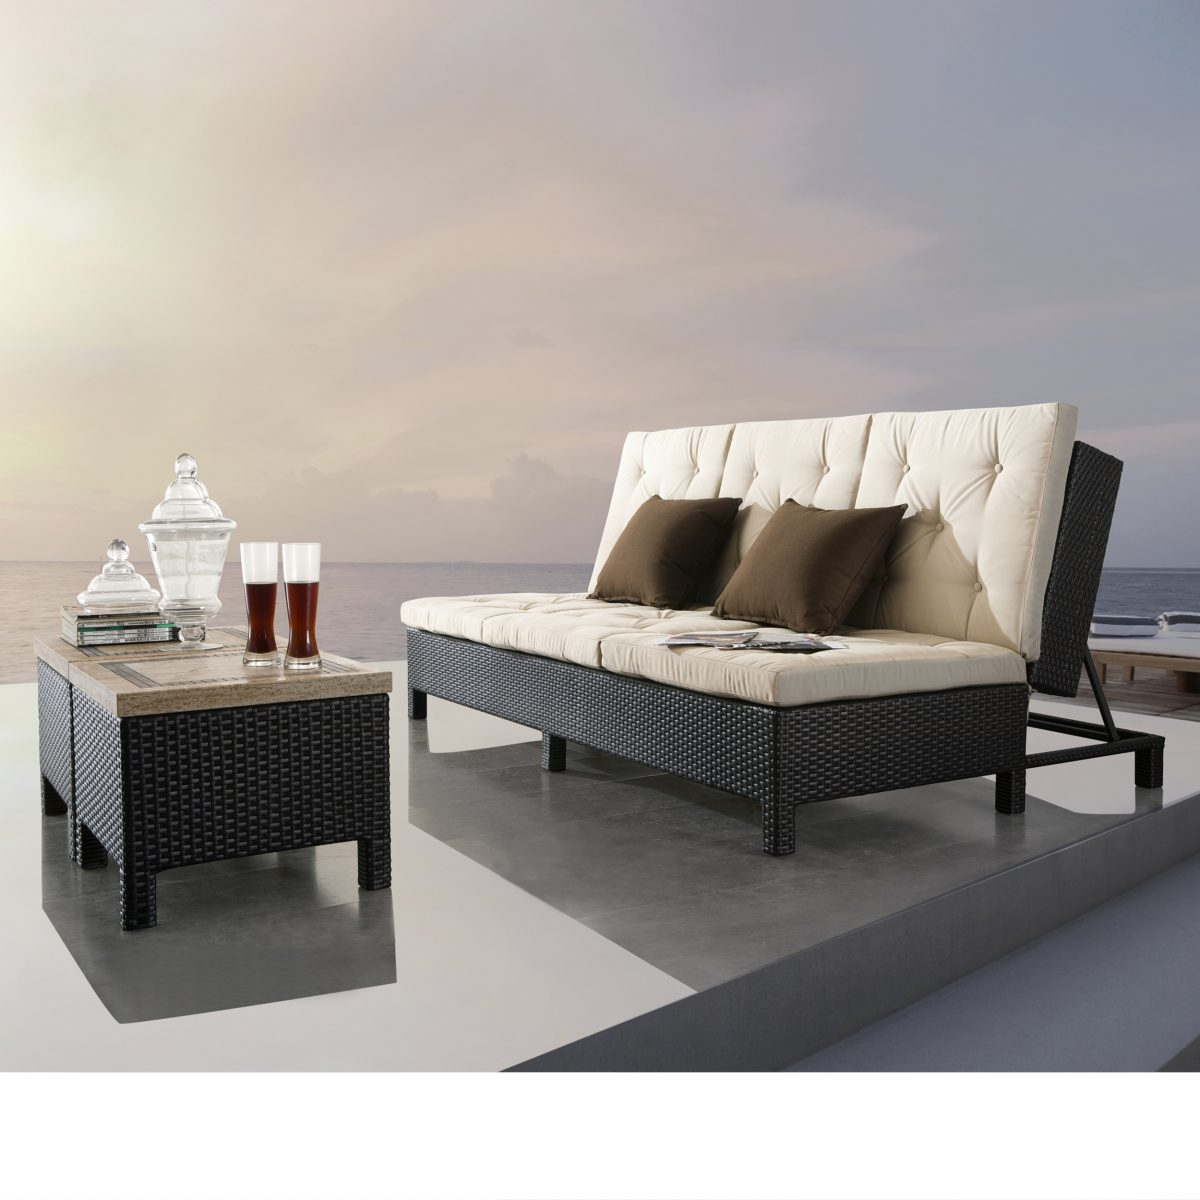 Resin Wicker Multi Position Double Patio Chaise Lounges With Regard To Fashionable Sirio Euro Patio Double Chaise Lounge Sofa Set (View 22 of 25)